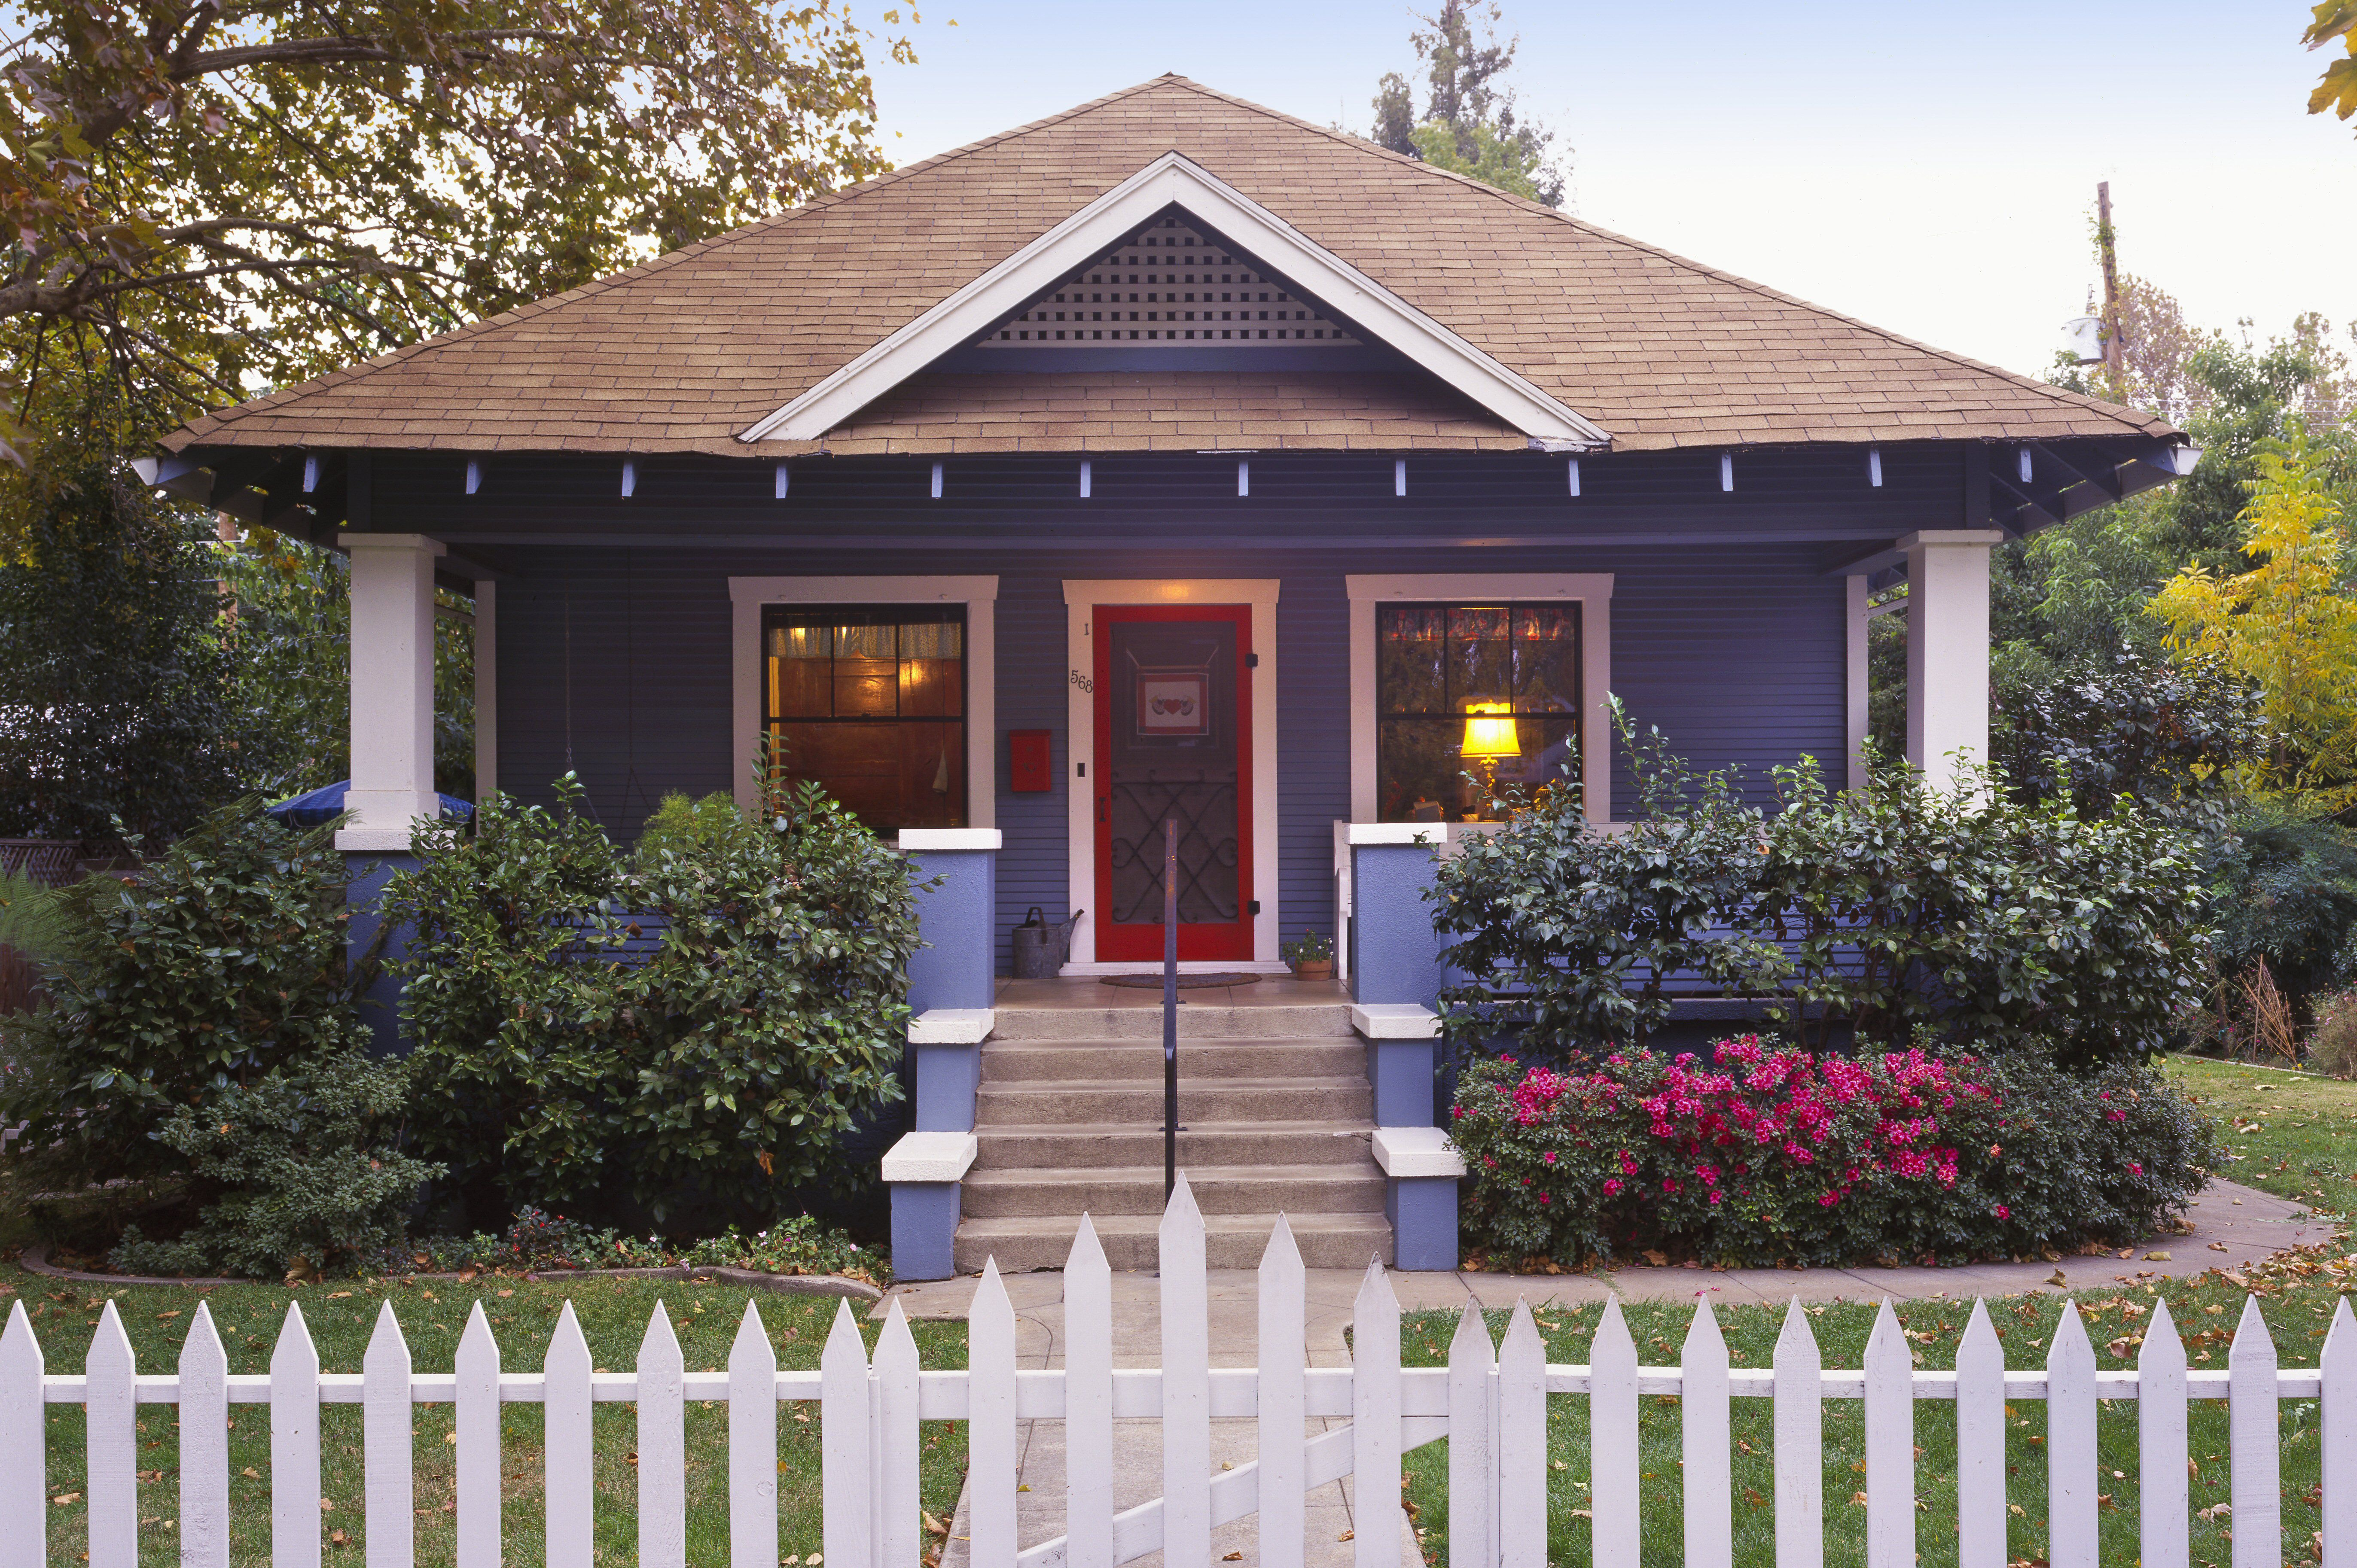 Blue And White Bungalow Red Screen Door Picket Fence